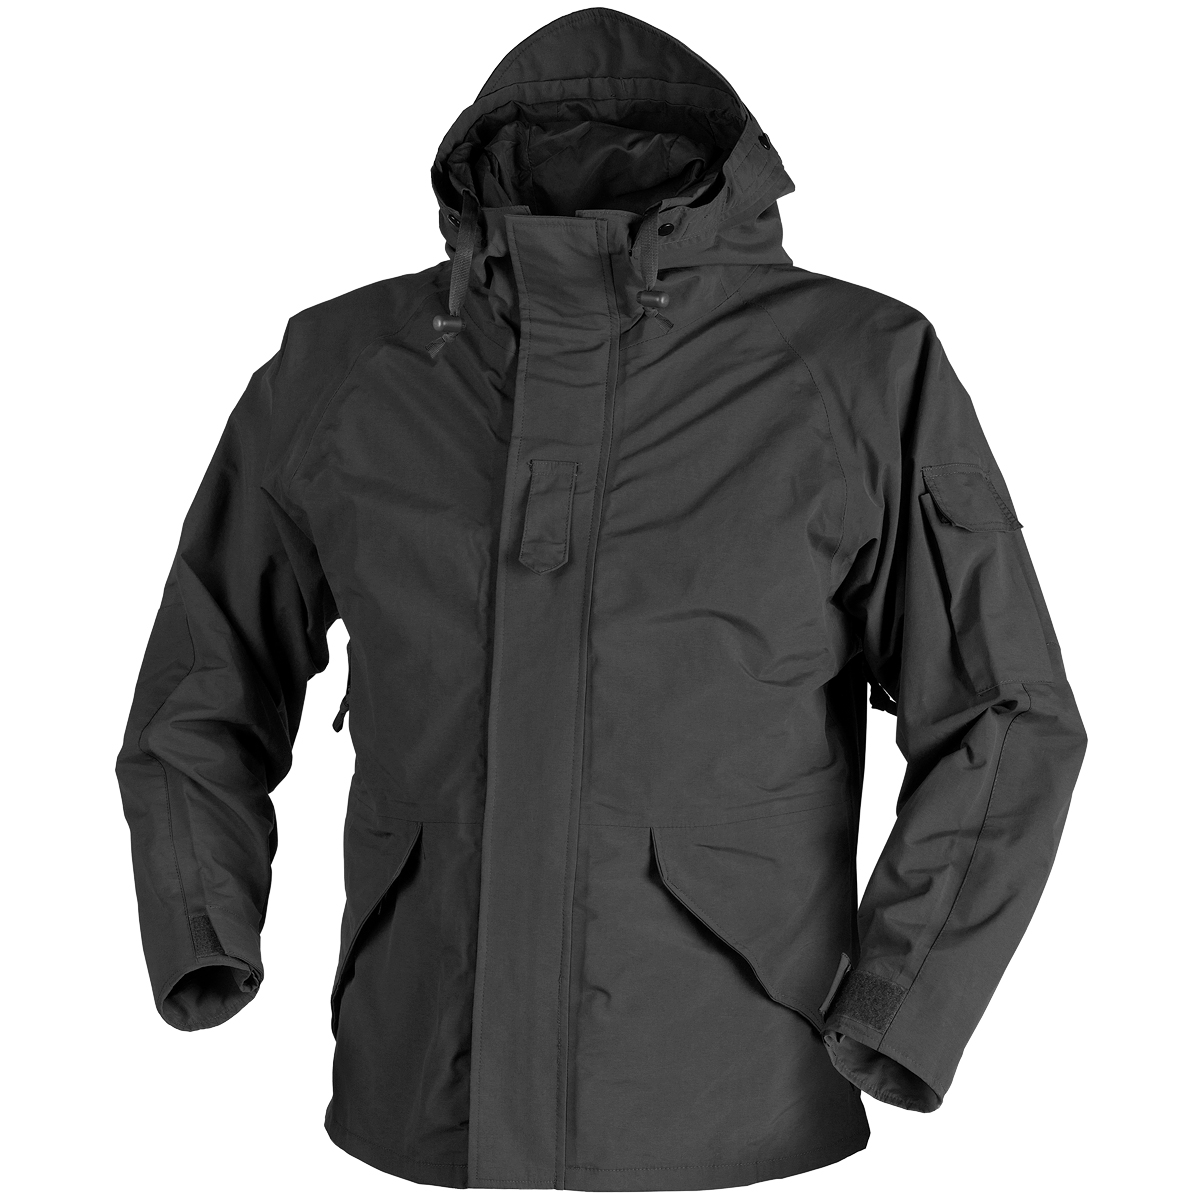 Mens Military Jacket. Chill winds, daytime breezes, and low temperatures are no match for the extra layer of protection provided by a stylish liveblog.gable in a variety of styles and colors, a men's military jacket is a must-have addition to any casual wardrobe.